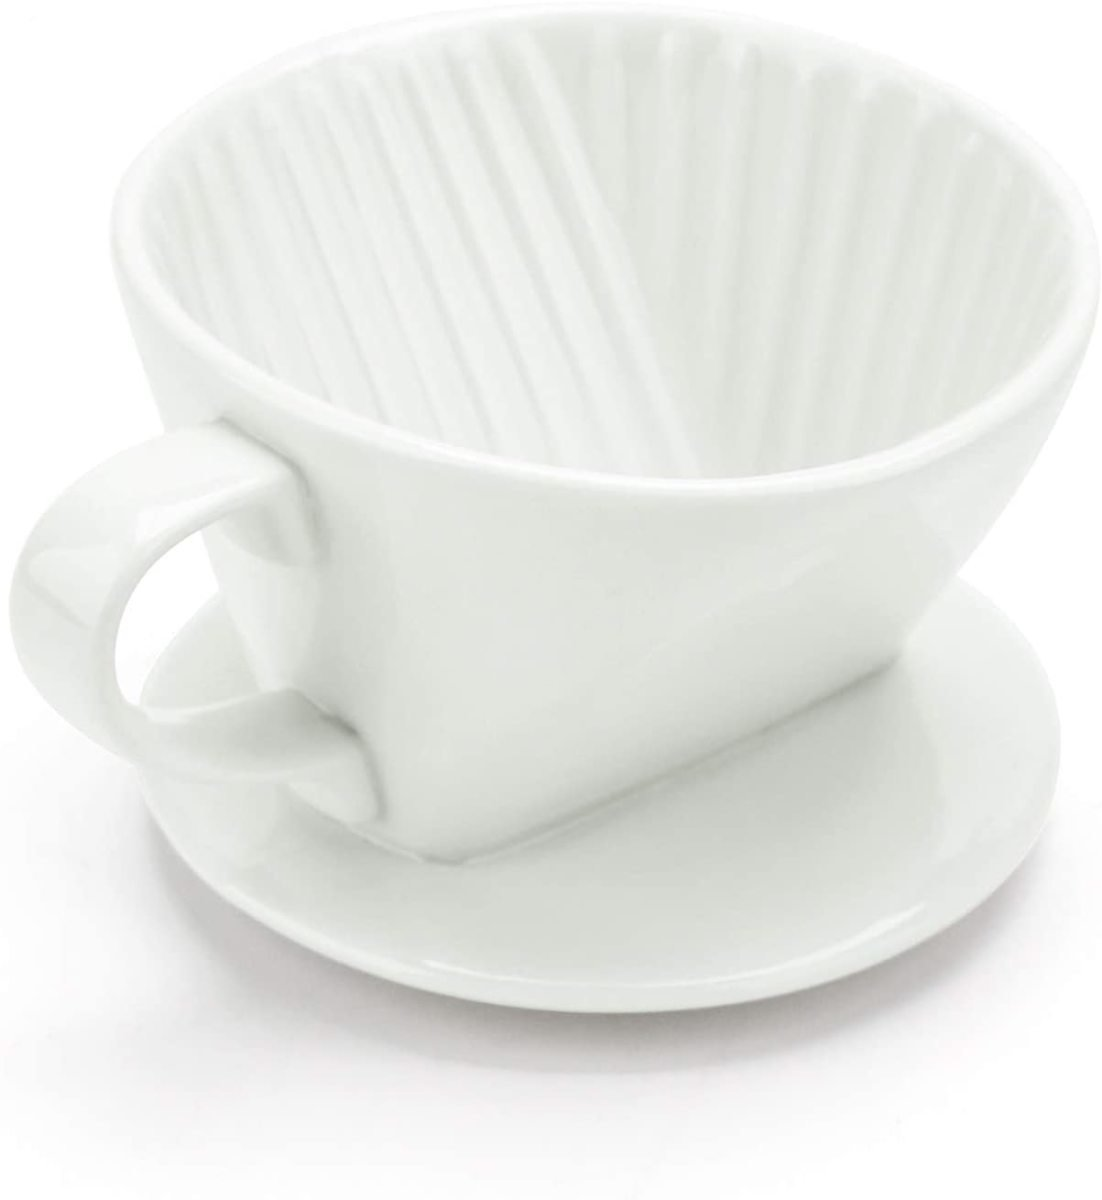 Coffee Pour Over Ceramic, Segarty #2 Coffee Filter Cup with 3 Holes At Flat Bottom, Brewing Coffee Dripper, Home & Office Used, Easy to Clean, Gift for Coffee Enthusiast & At-home Baristas, White